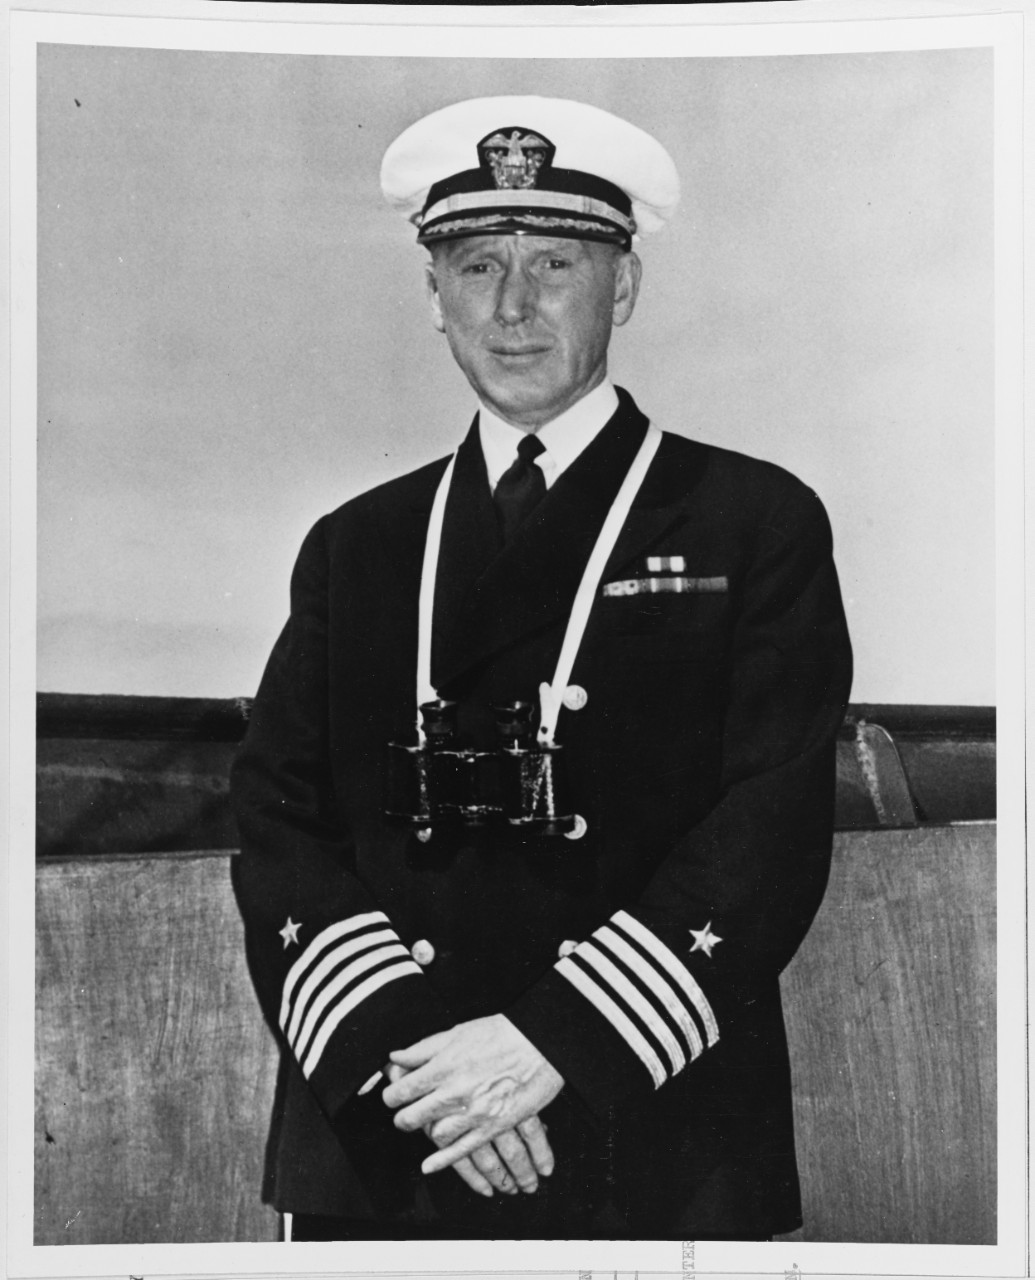 Photo #: 80-G-20823  Captain Norman Scott, USN